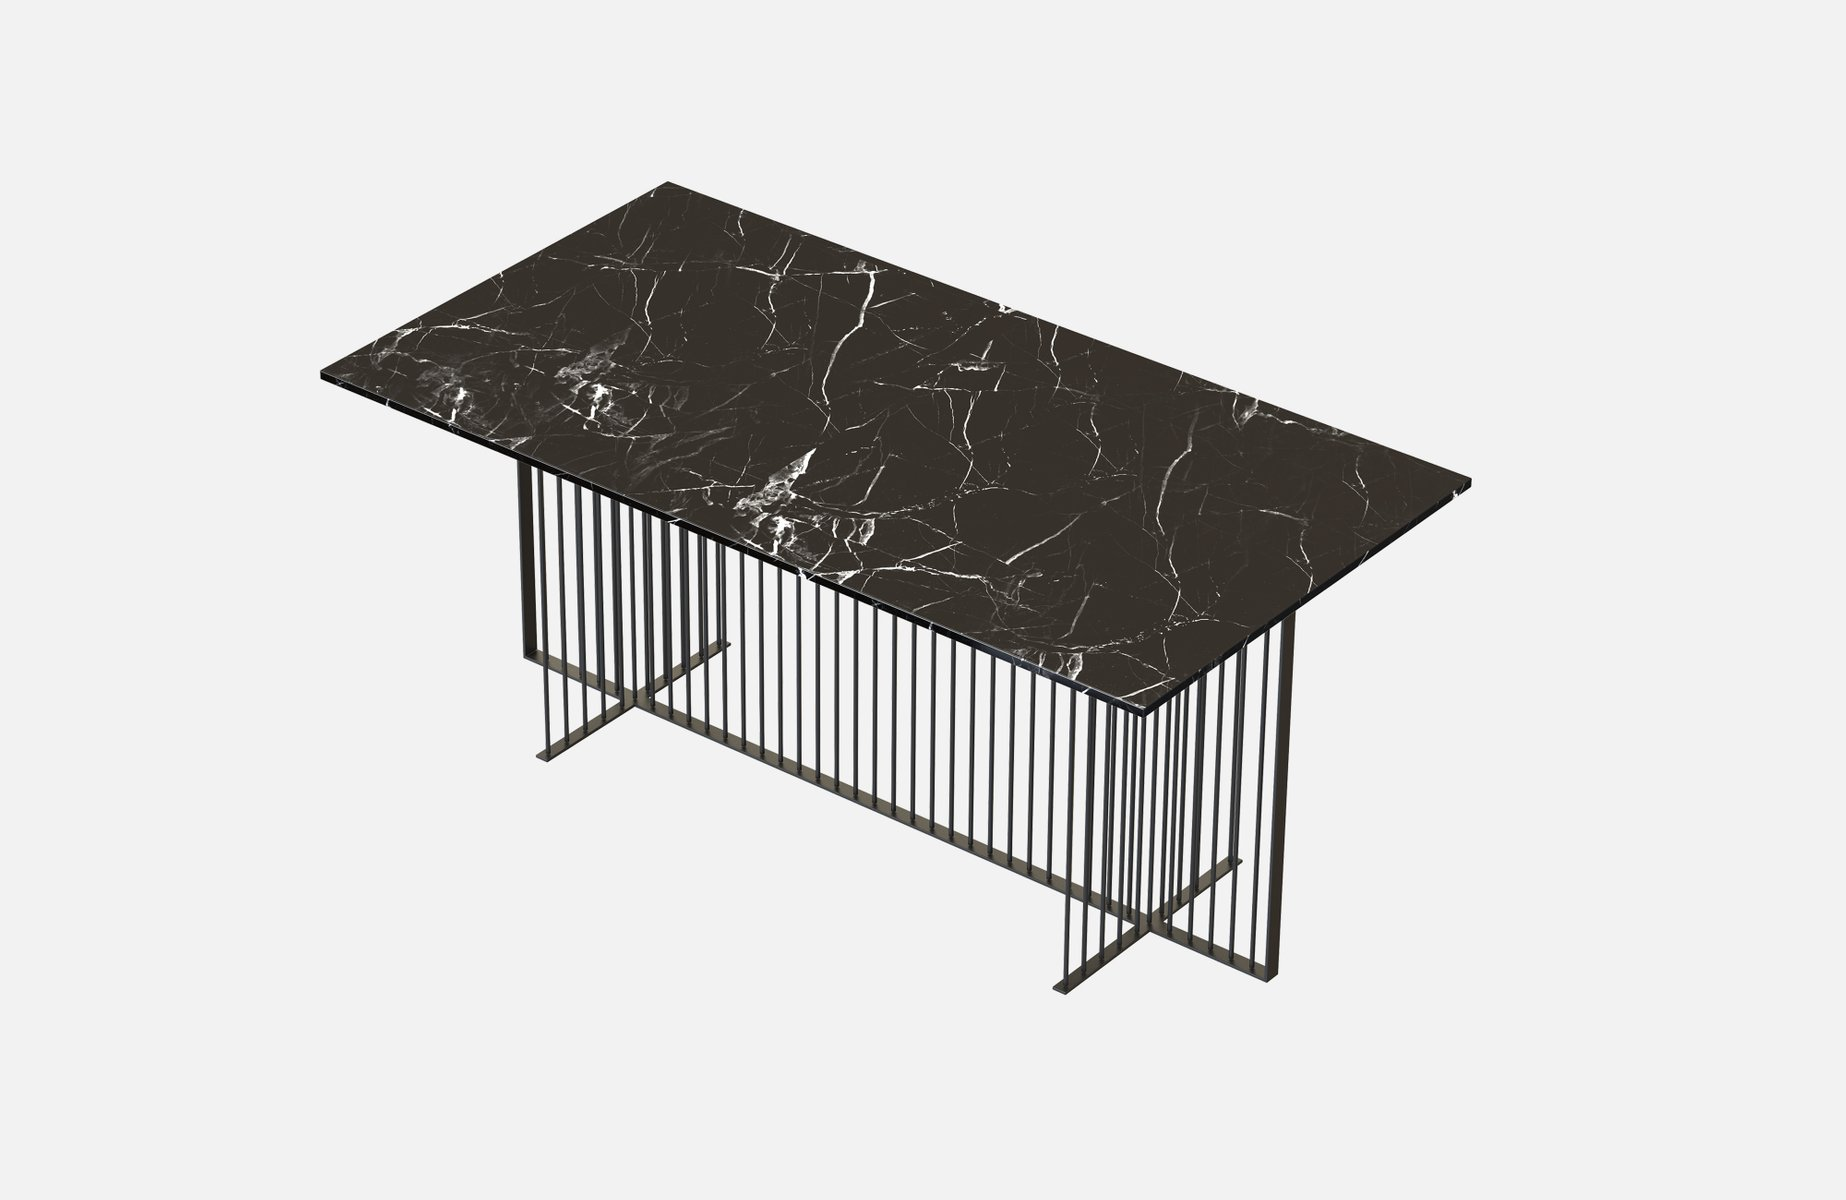 MEISTER Dining Table in Black with Black Marble Top by Alex Baser for ...